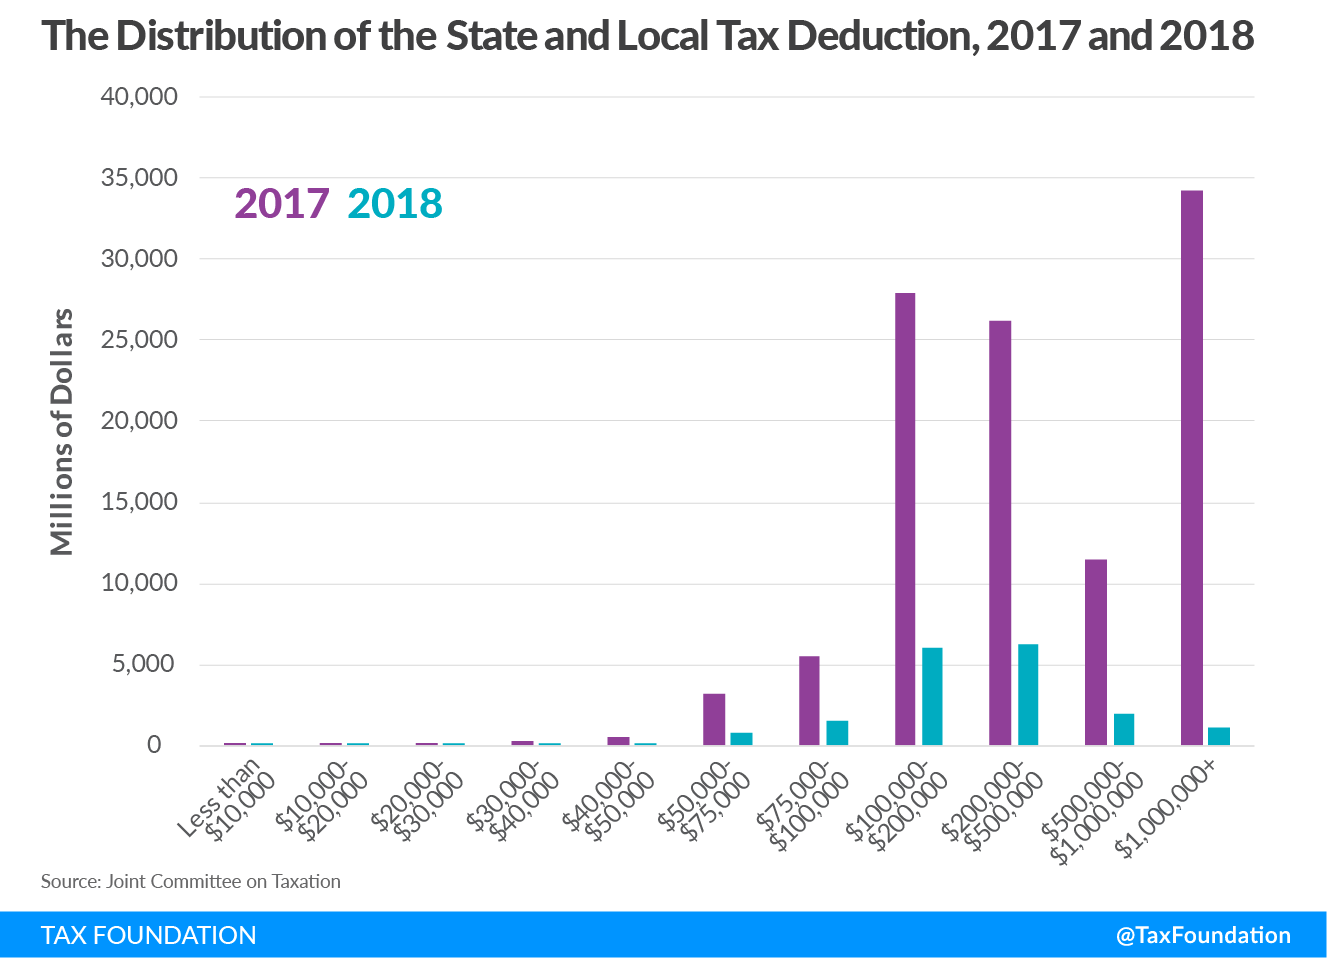 SALT distribution of the State and local tax deduction, distributional impact of limiting the SALT deduction, who does the SALT limit affect?